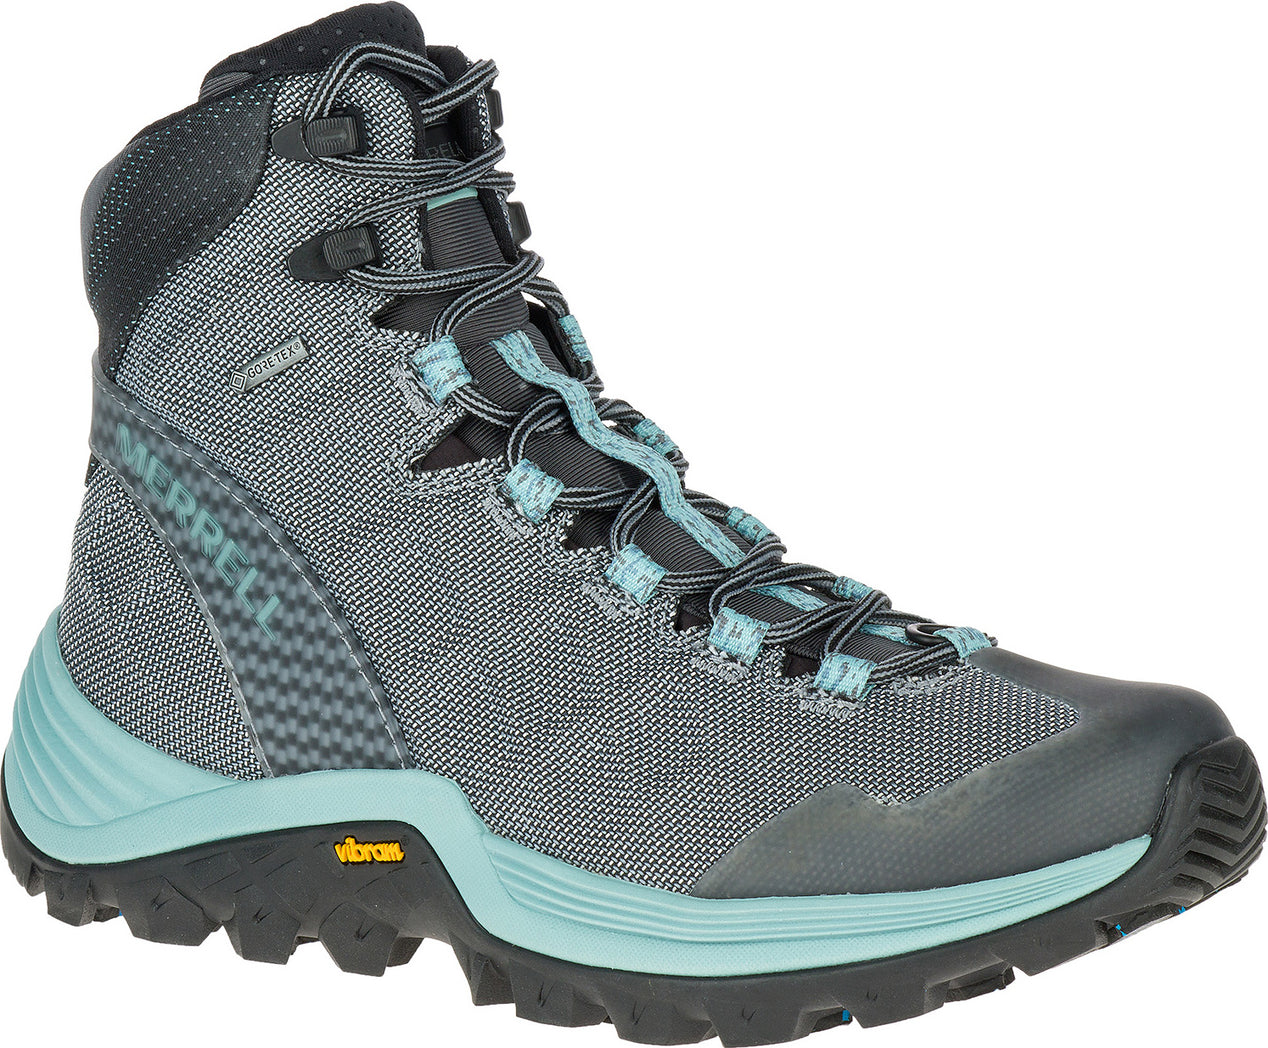 55c49a14 Merrell Thermo Rogue Mid GORE-TEX - Women's